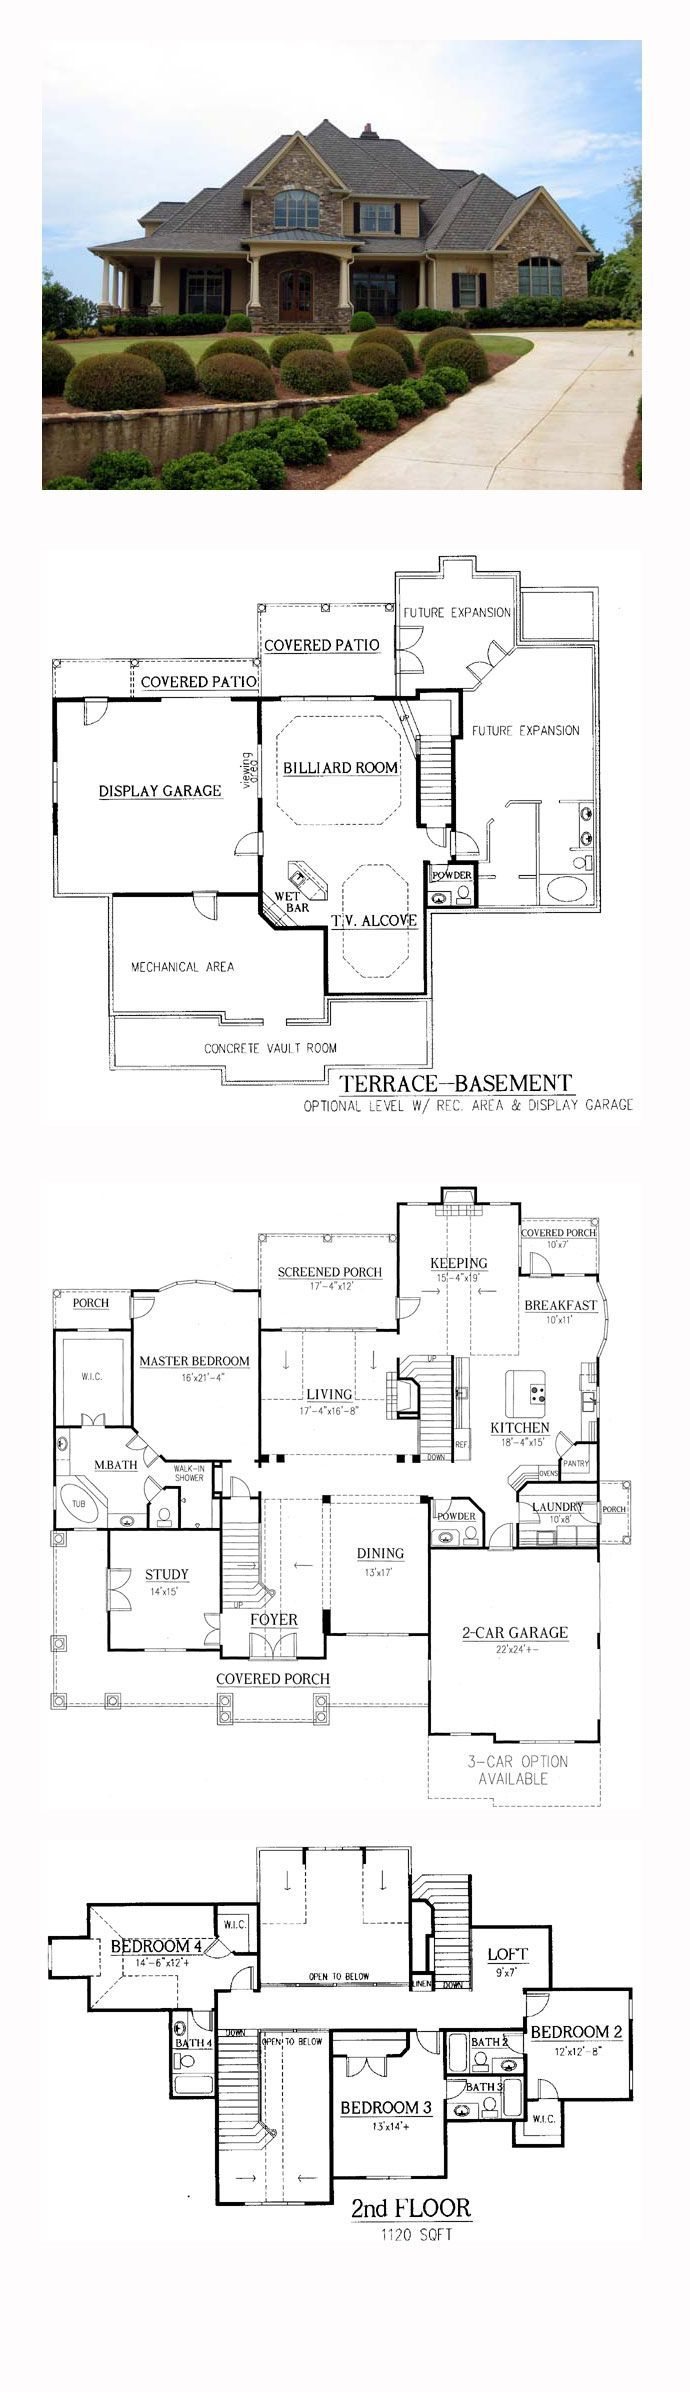 25 B Sta House Blueprints Id Erna P Pinterest